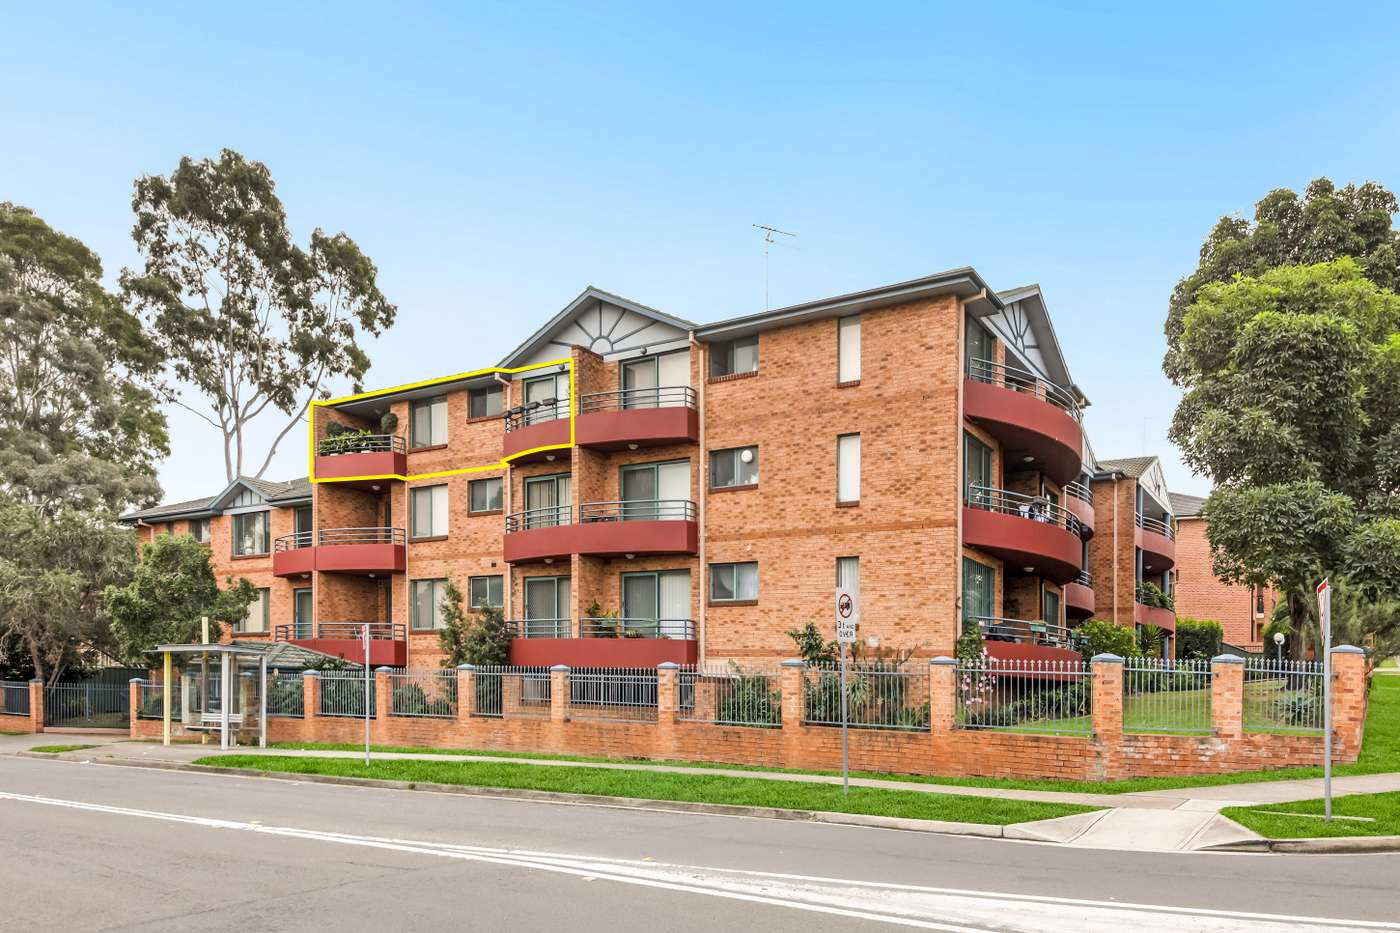 Main view of Homely unit listing, 12/94 Brancourt Avenue, Yagoona, NSW 2199